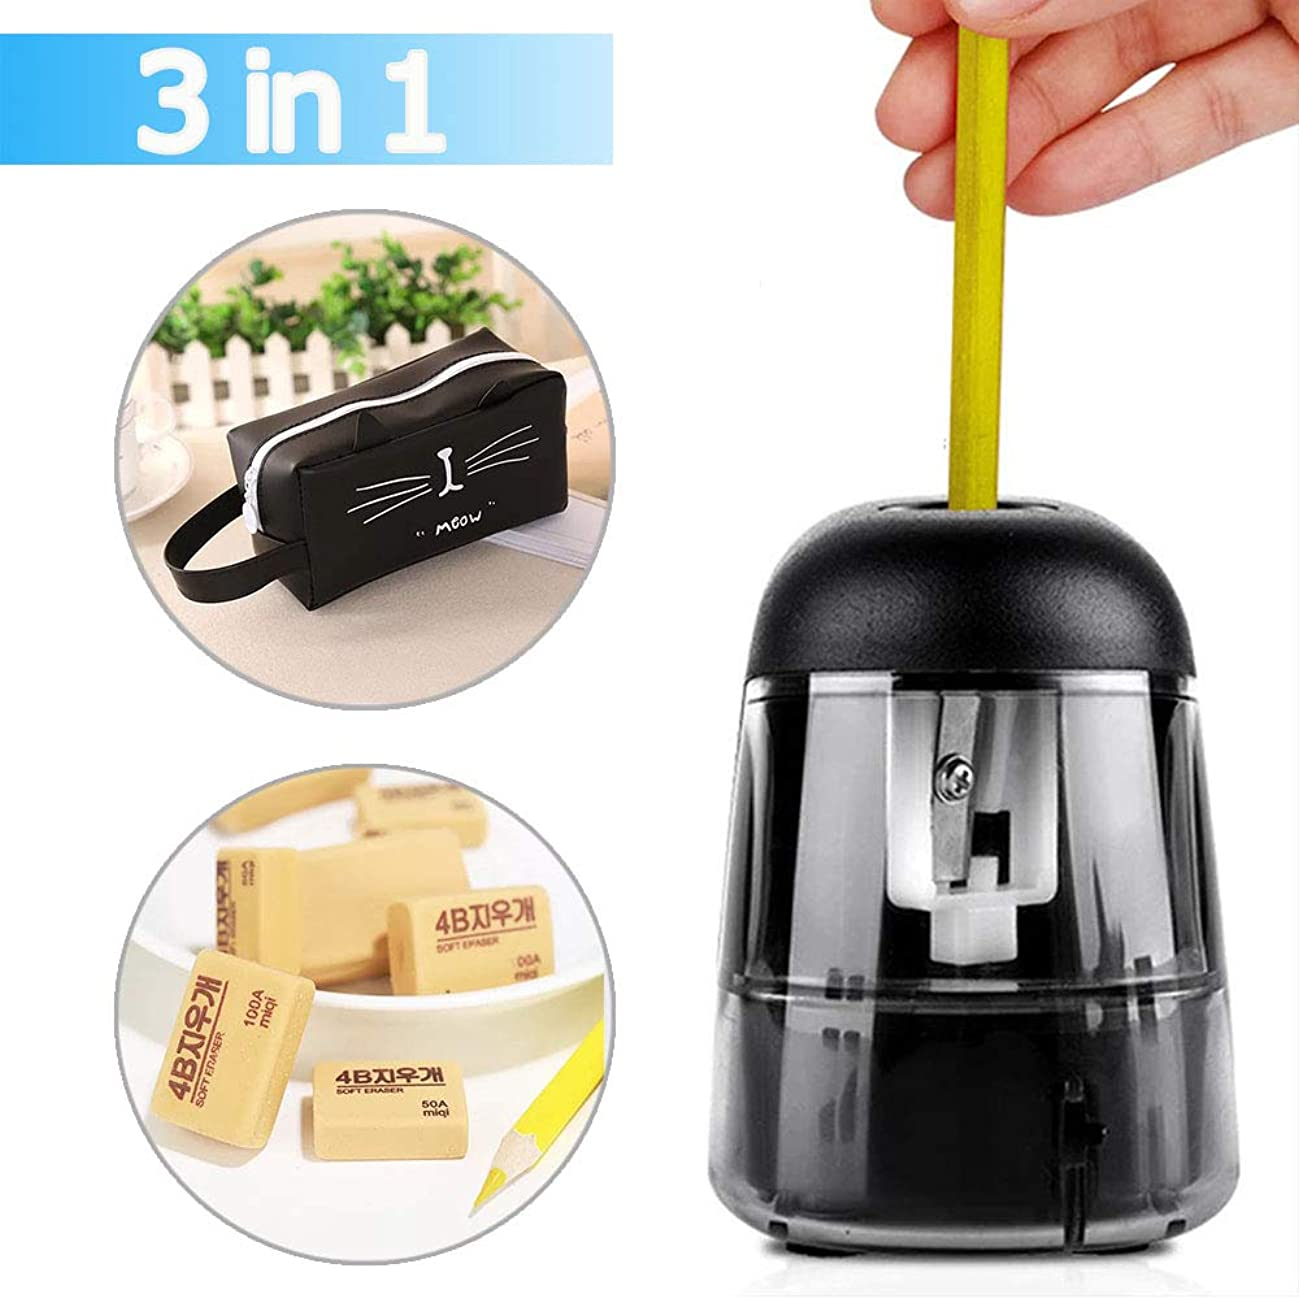 Electric Pencil Sharpener,(6.5-8mm)3 in 1 Pencil Sharpener + Pen Bag + Eraser, Battery Operated Mini Pencil Sharpener For Kids Office Classroom